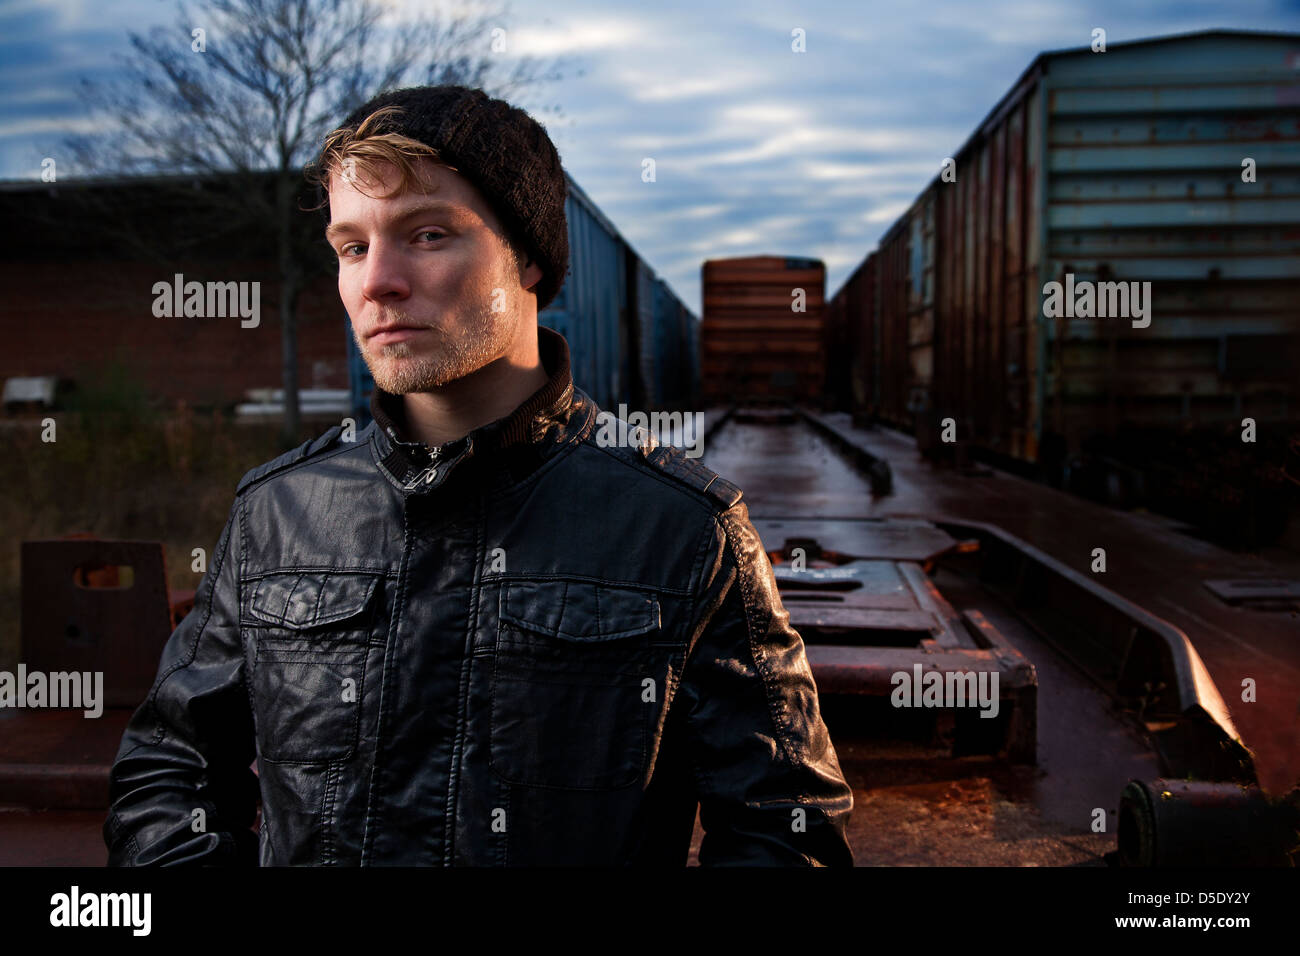 Man in cap and jacket in rail road yard - Stock Image